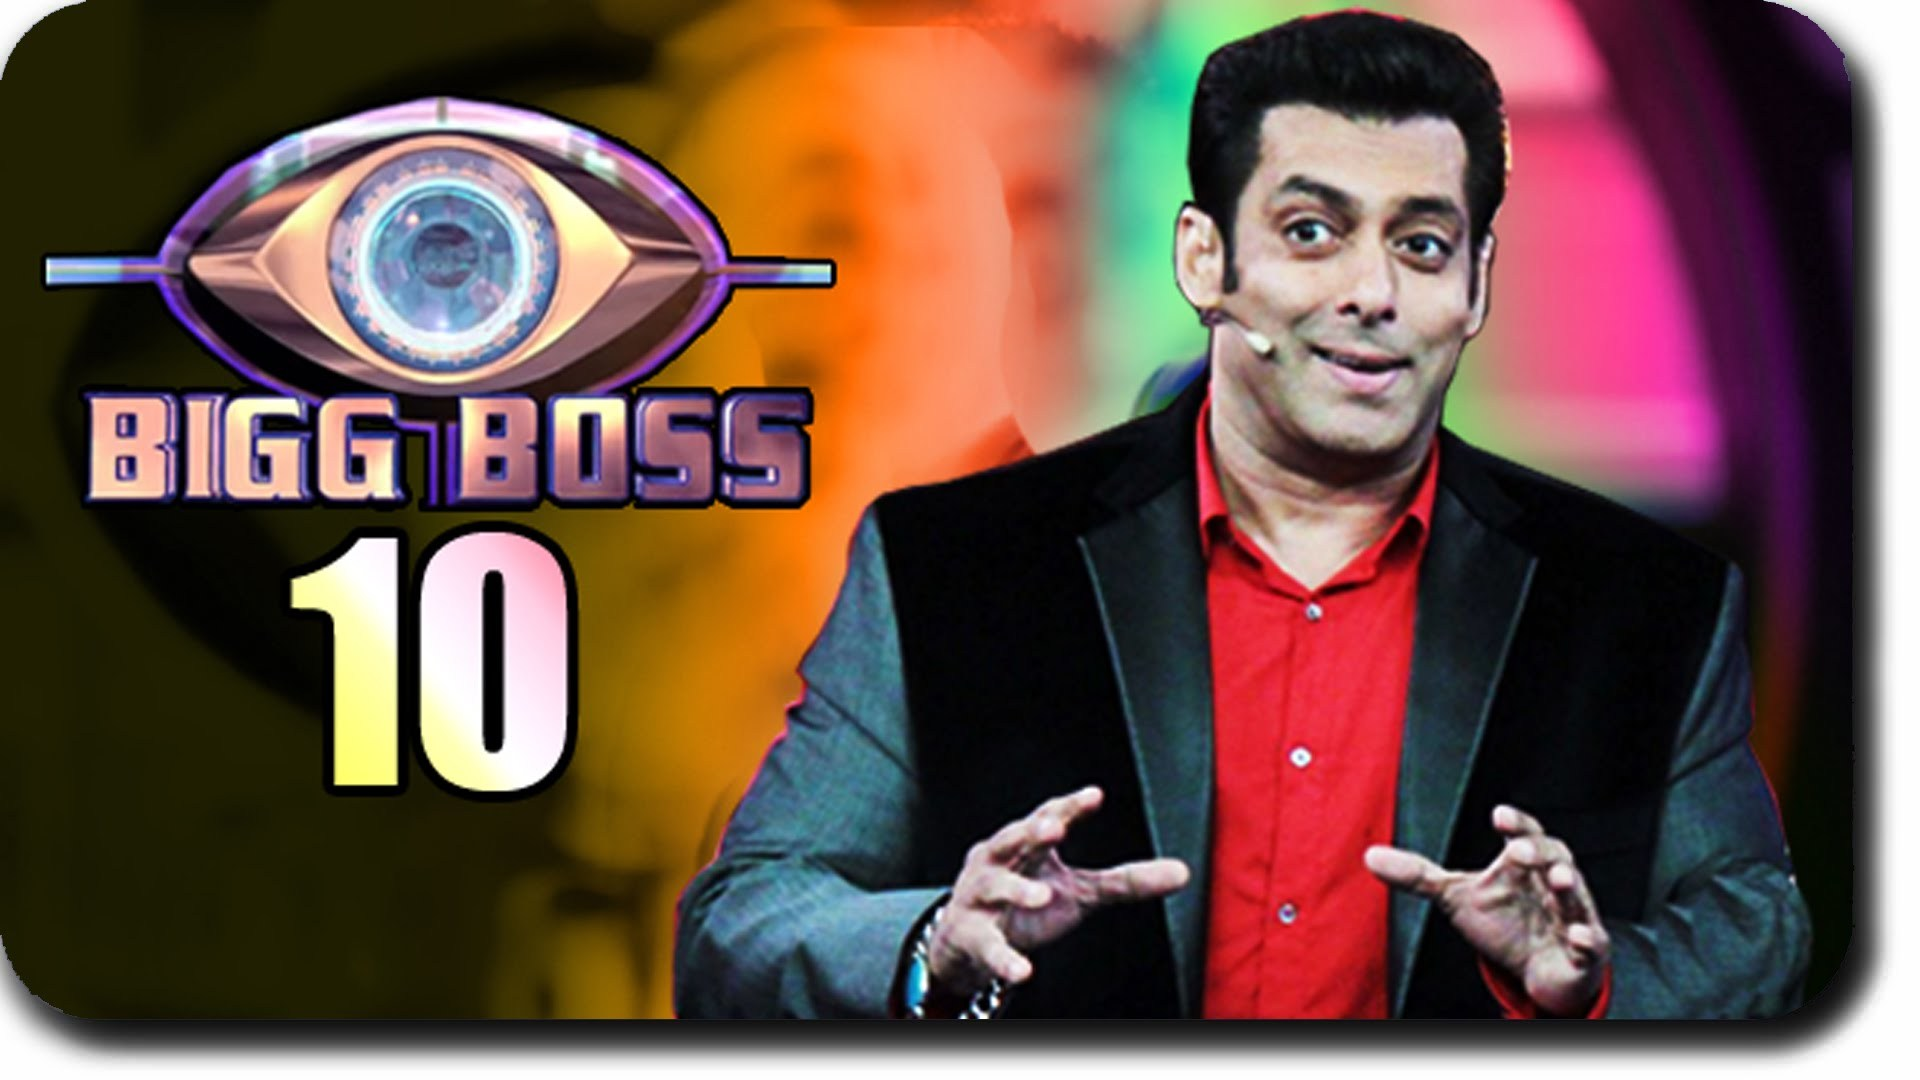 bigg-boss-10-latest-news-update-salman-khan-promo-video-out